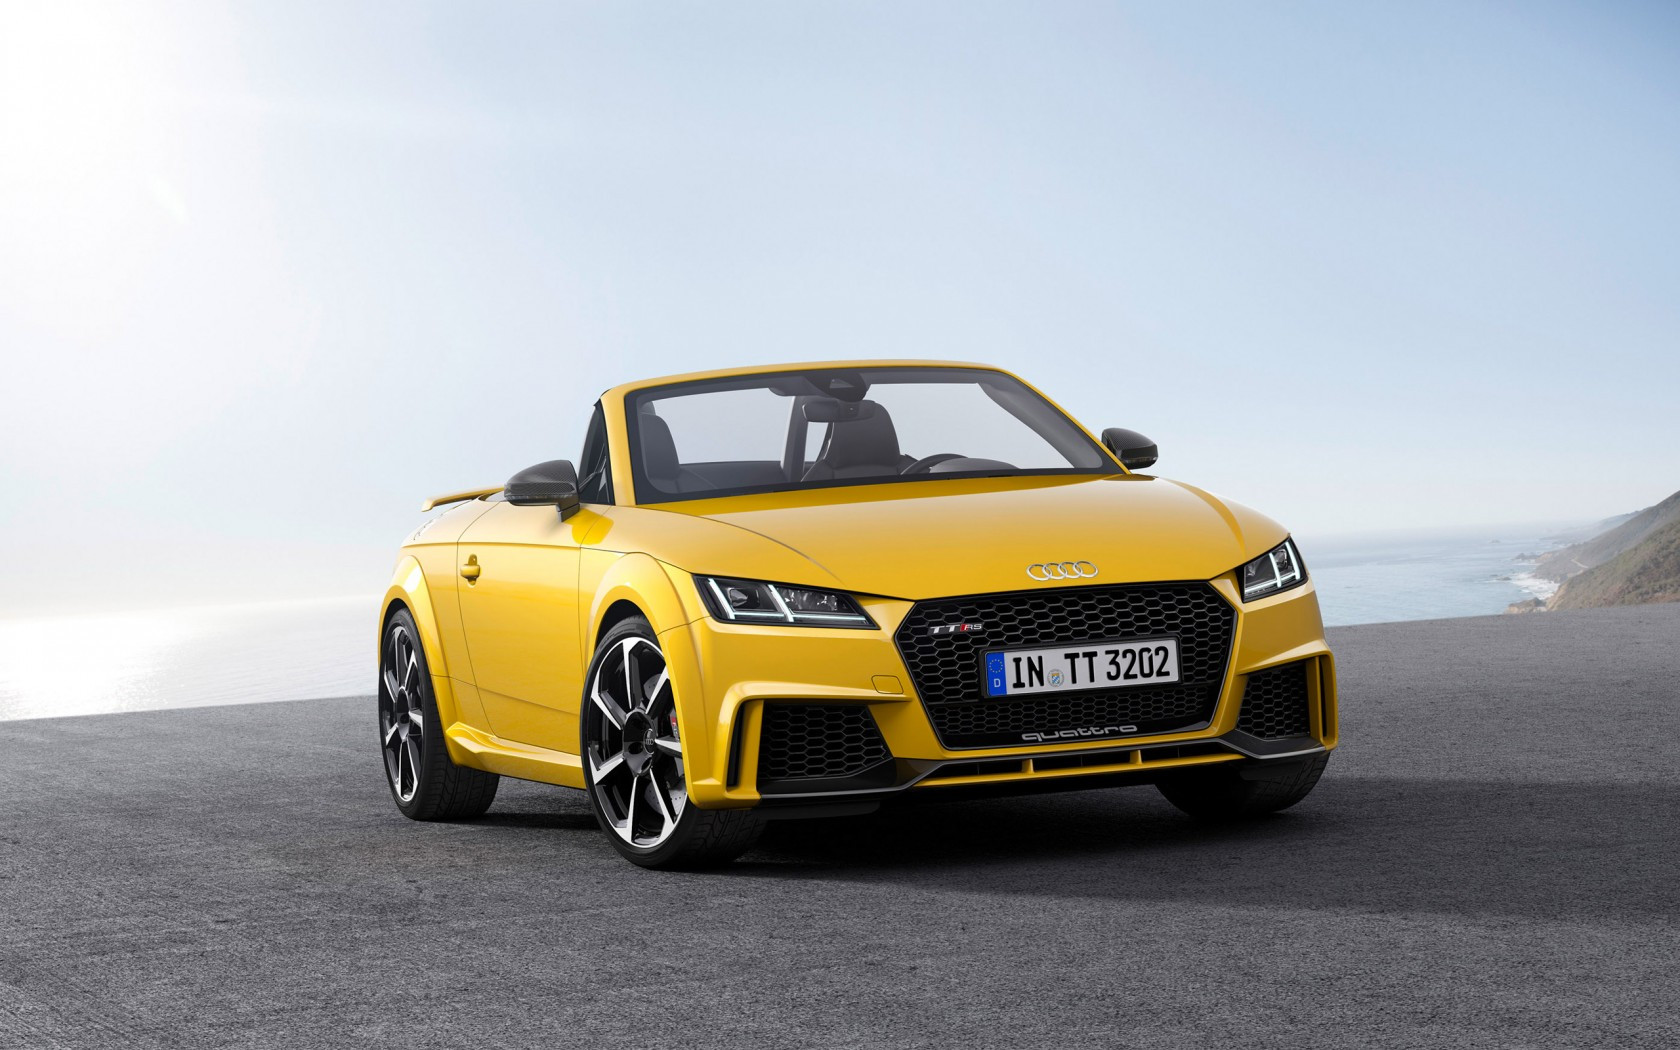 2017 Audi TT RS Roadster 2 Wallpaper | HD Car Wallpapers